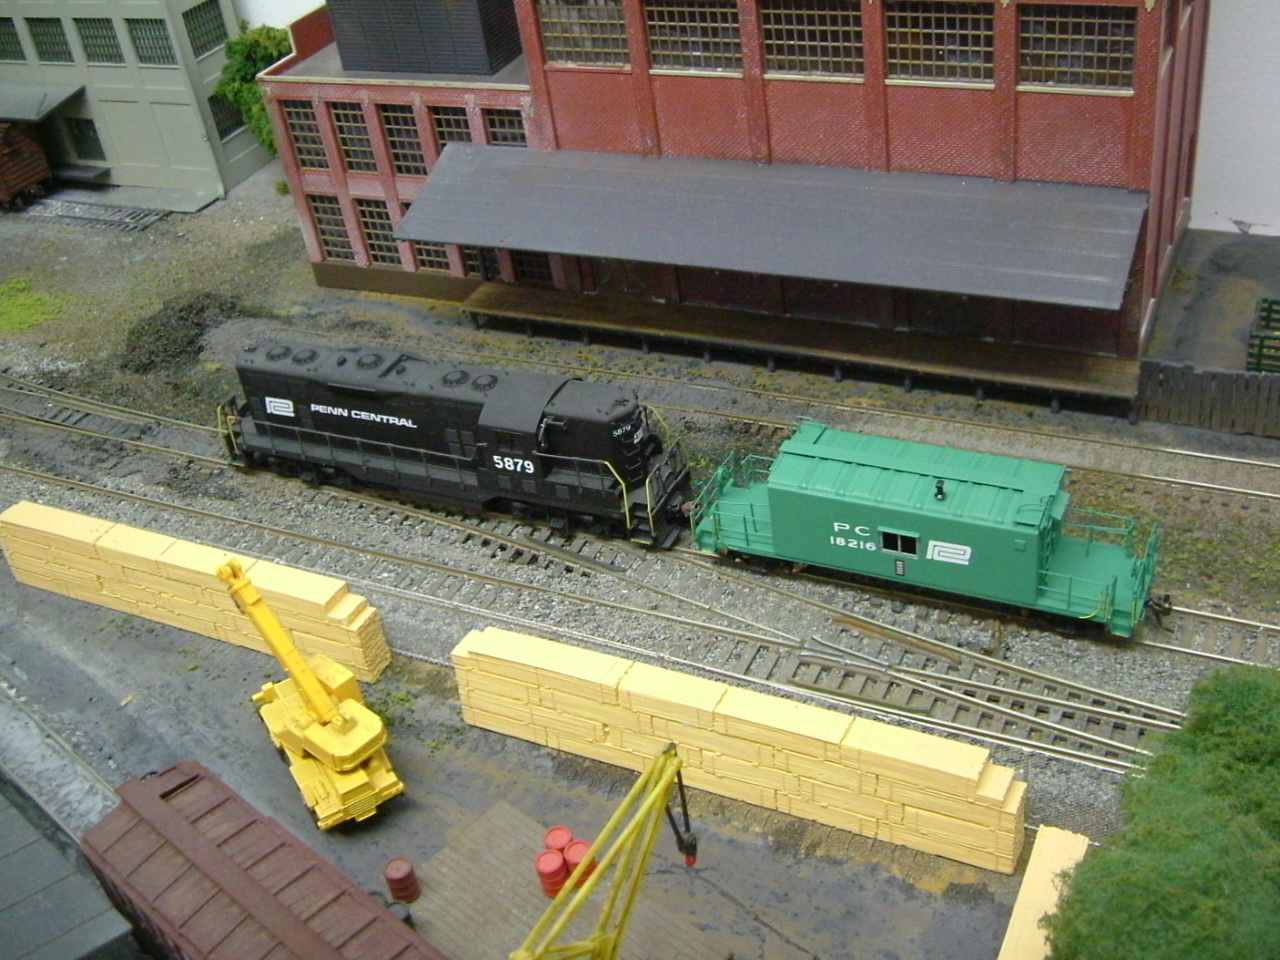 Penn Central GP-9 and transfer caboose